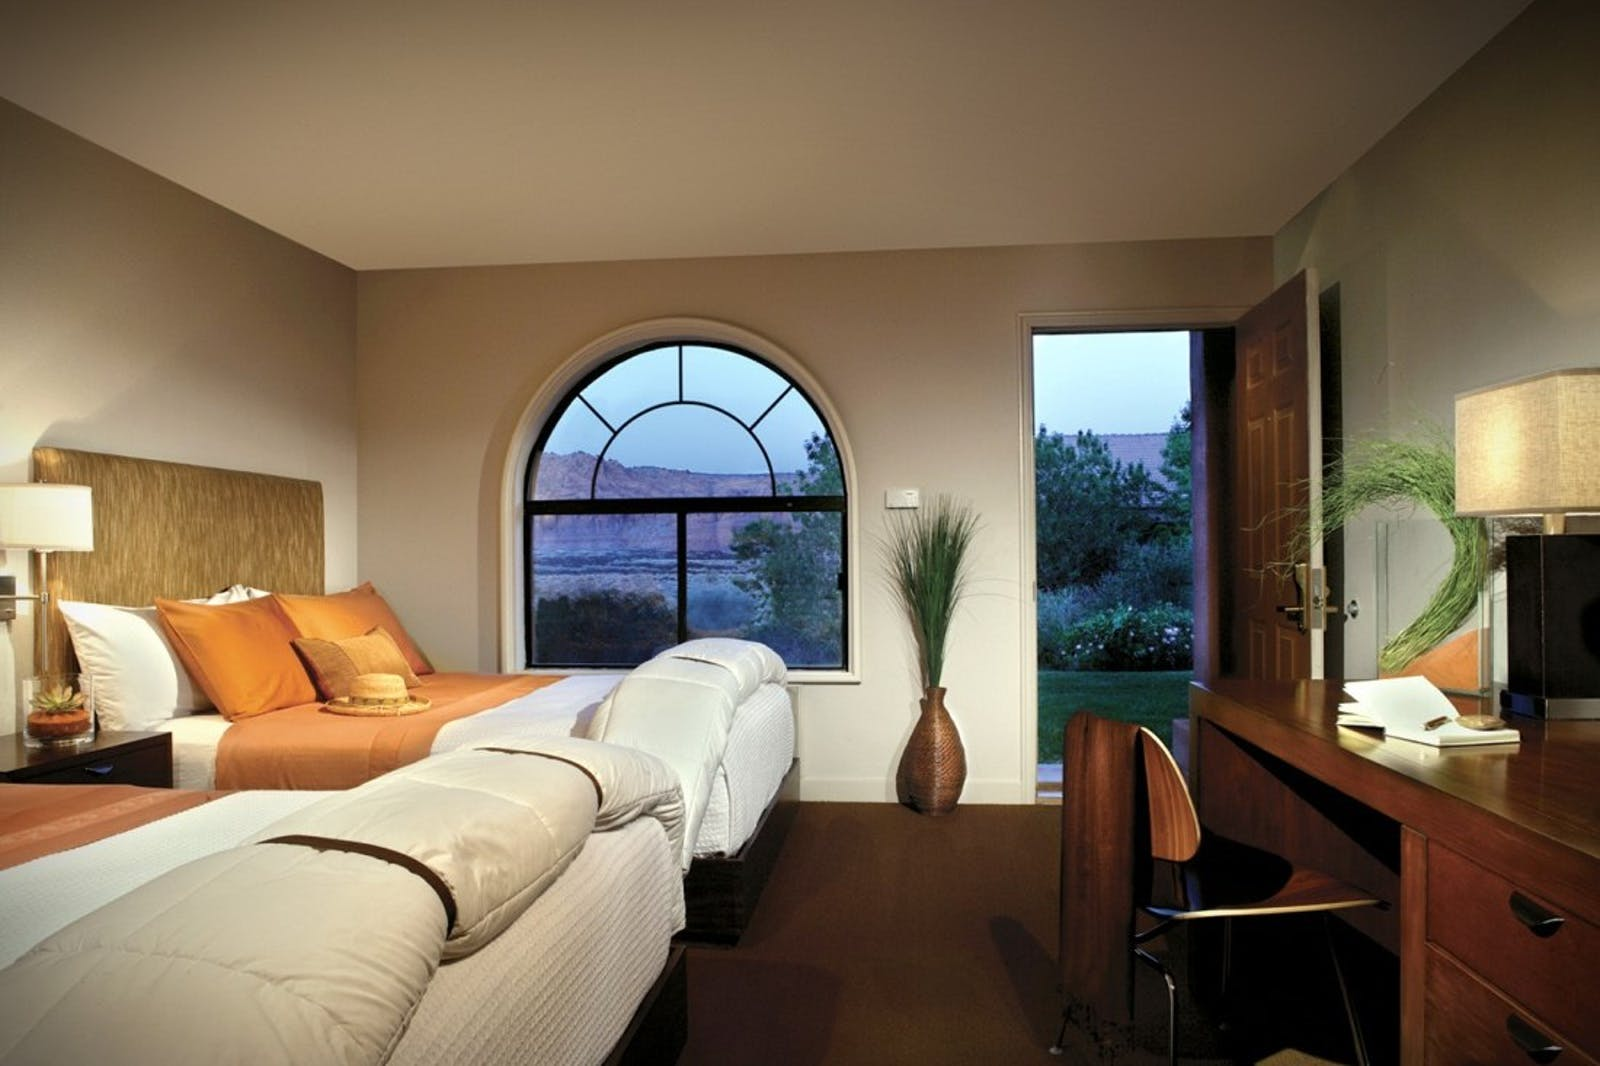 Deluxe Queen Room at Red Mountain Resort